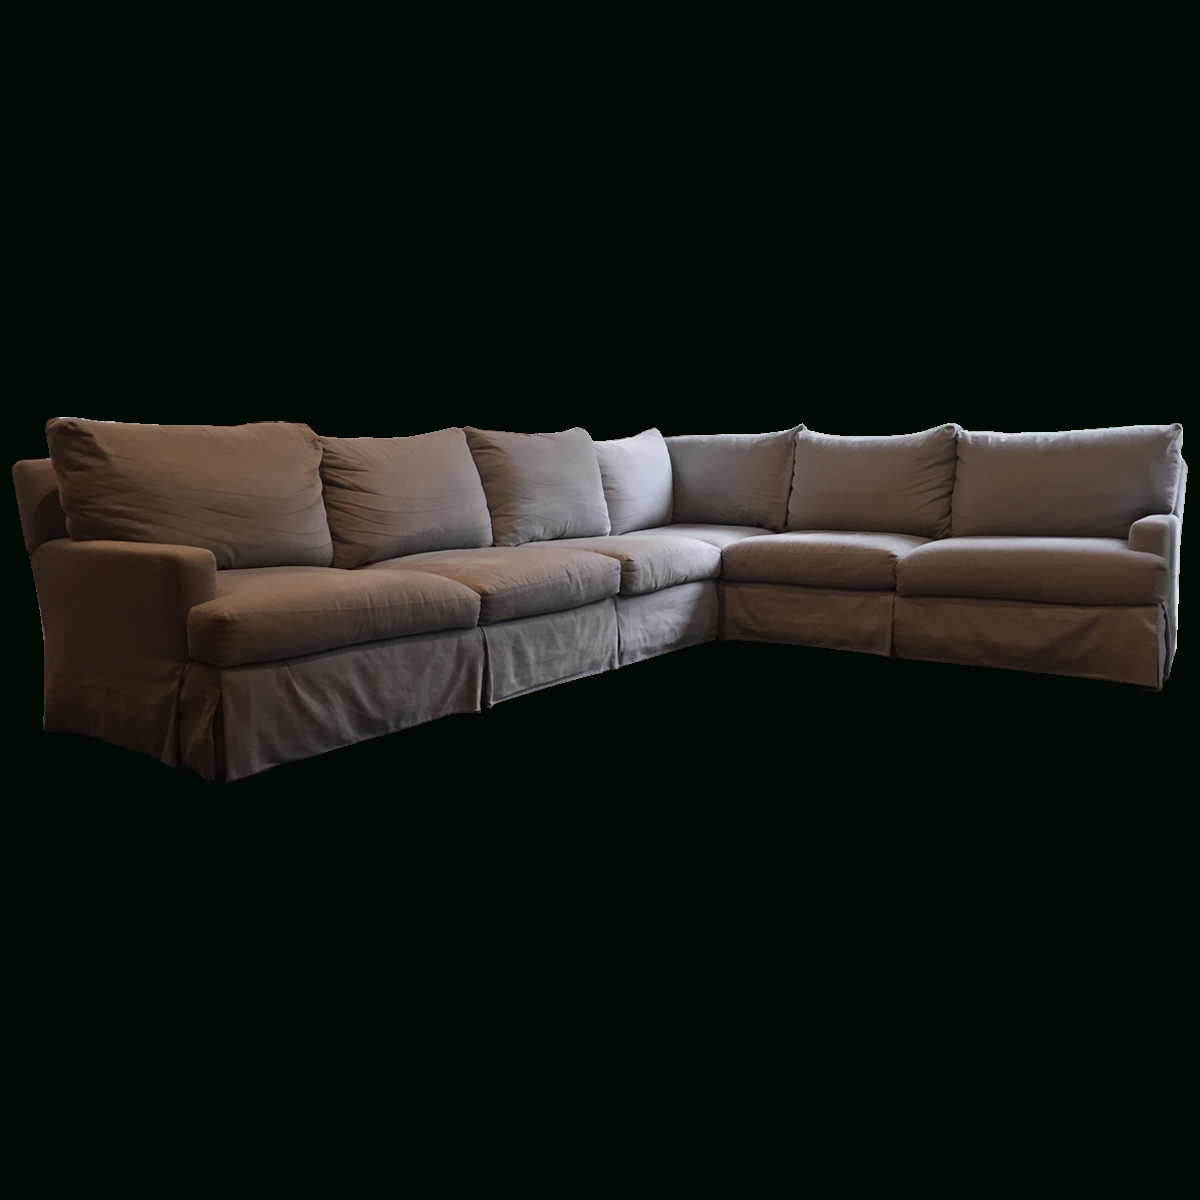 2018 Viyet – Designer Furniture – Seating – Lee Industries Linen Blend Intended For Lee Industries Sectional Sofas (View 1 of 20)